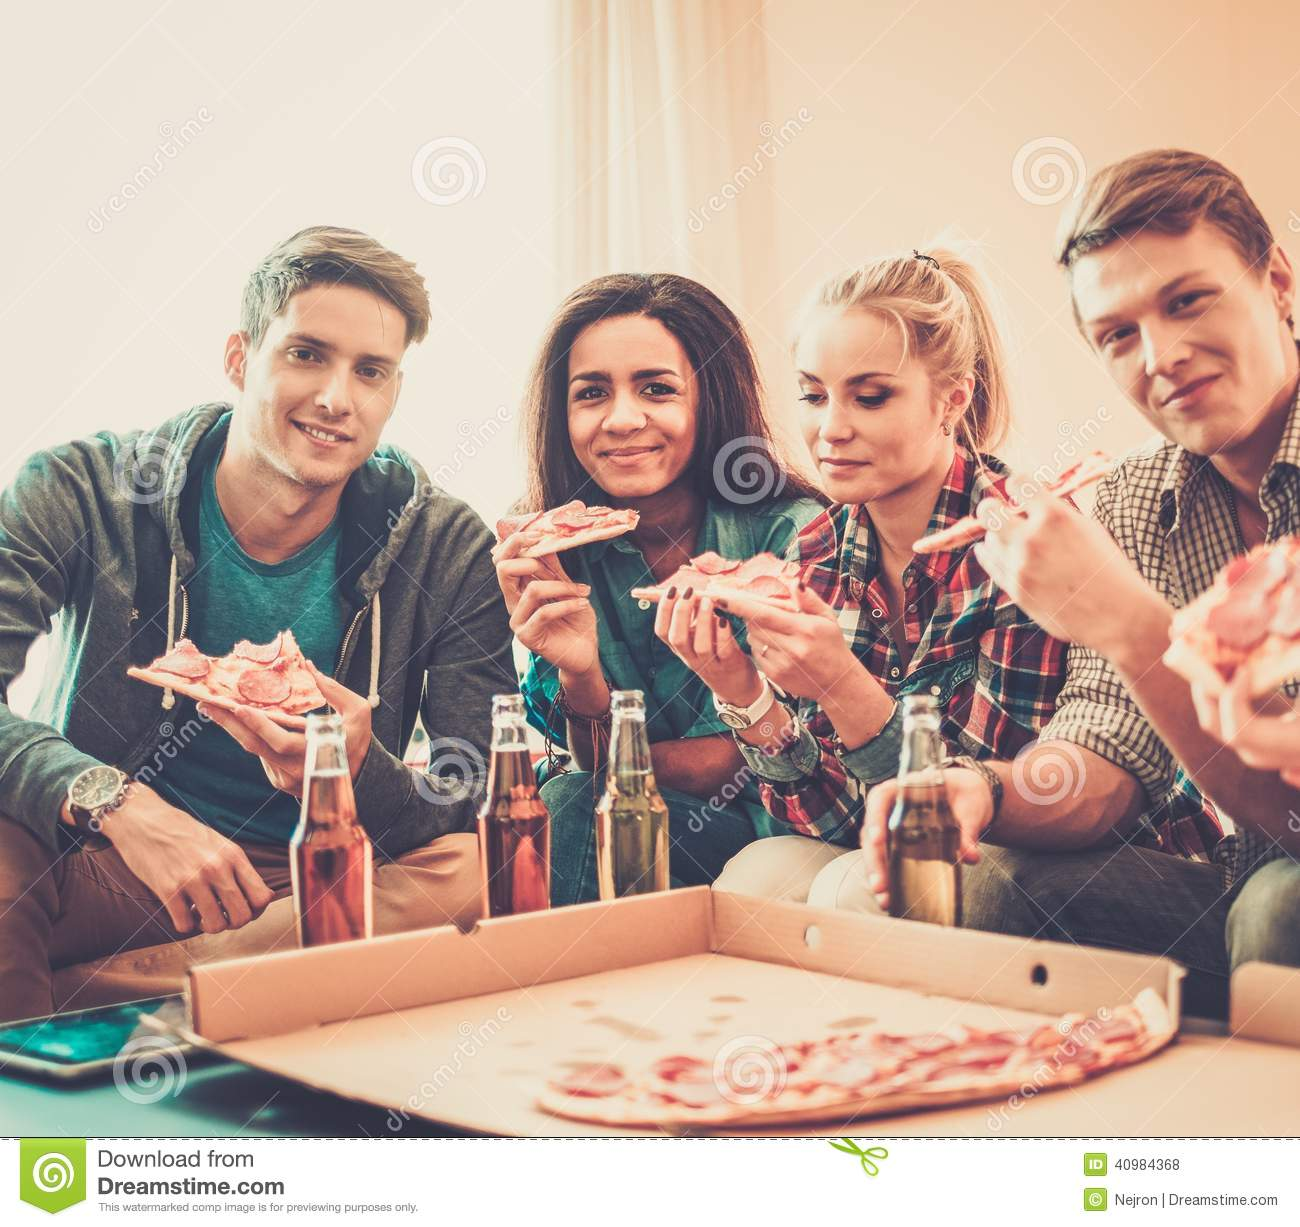 Celebrating Home Home Interiors   Multi Ethnic Friends Having Party Stock  Photo Image 40984368